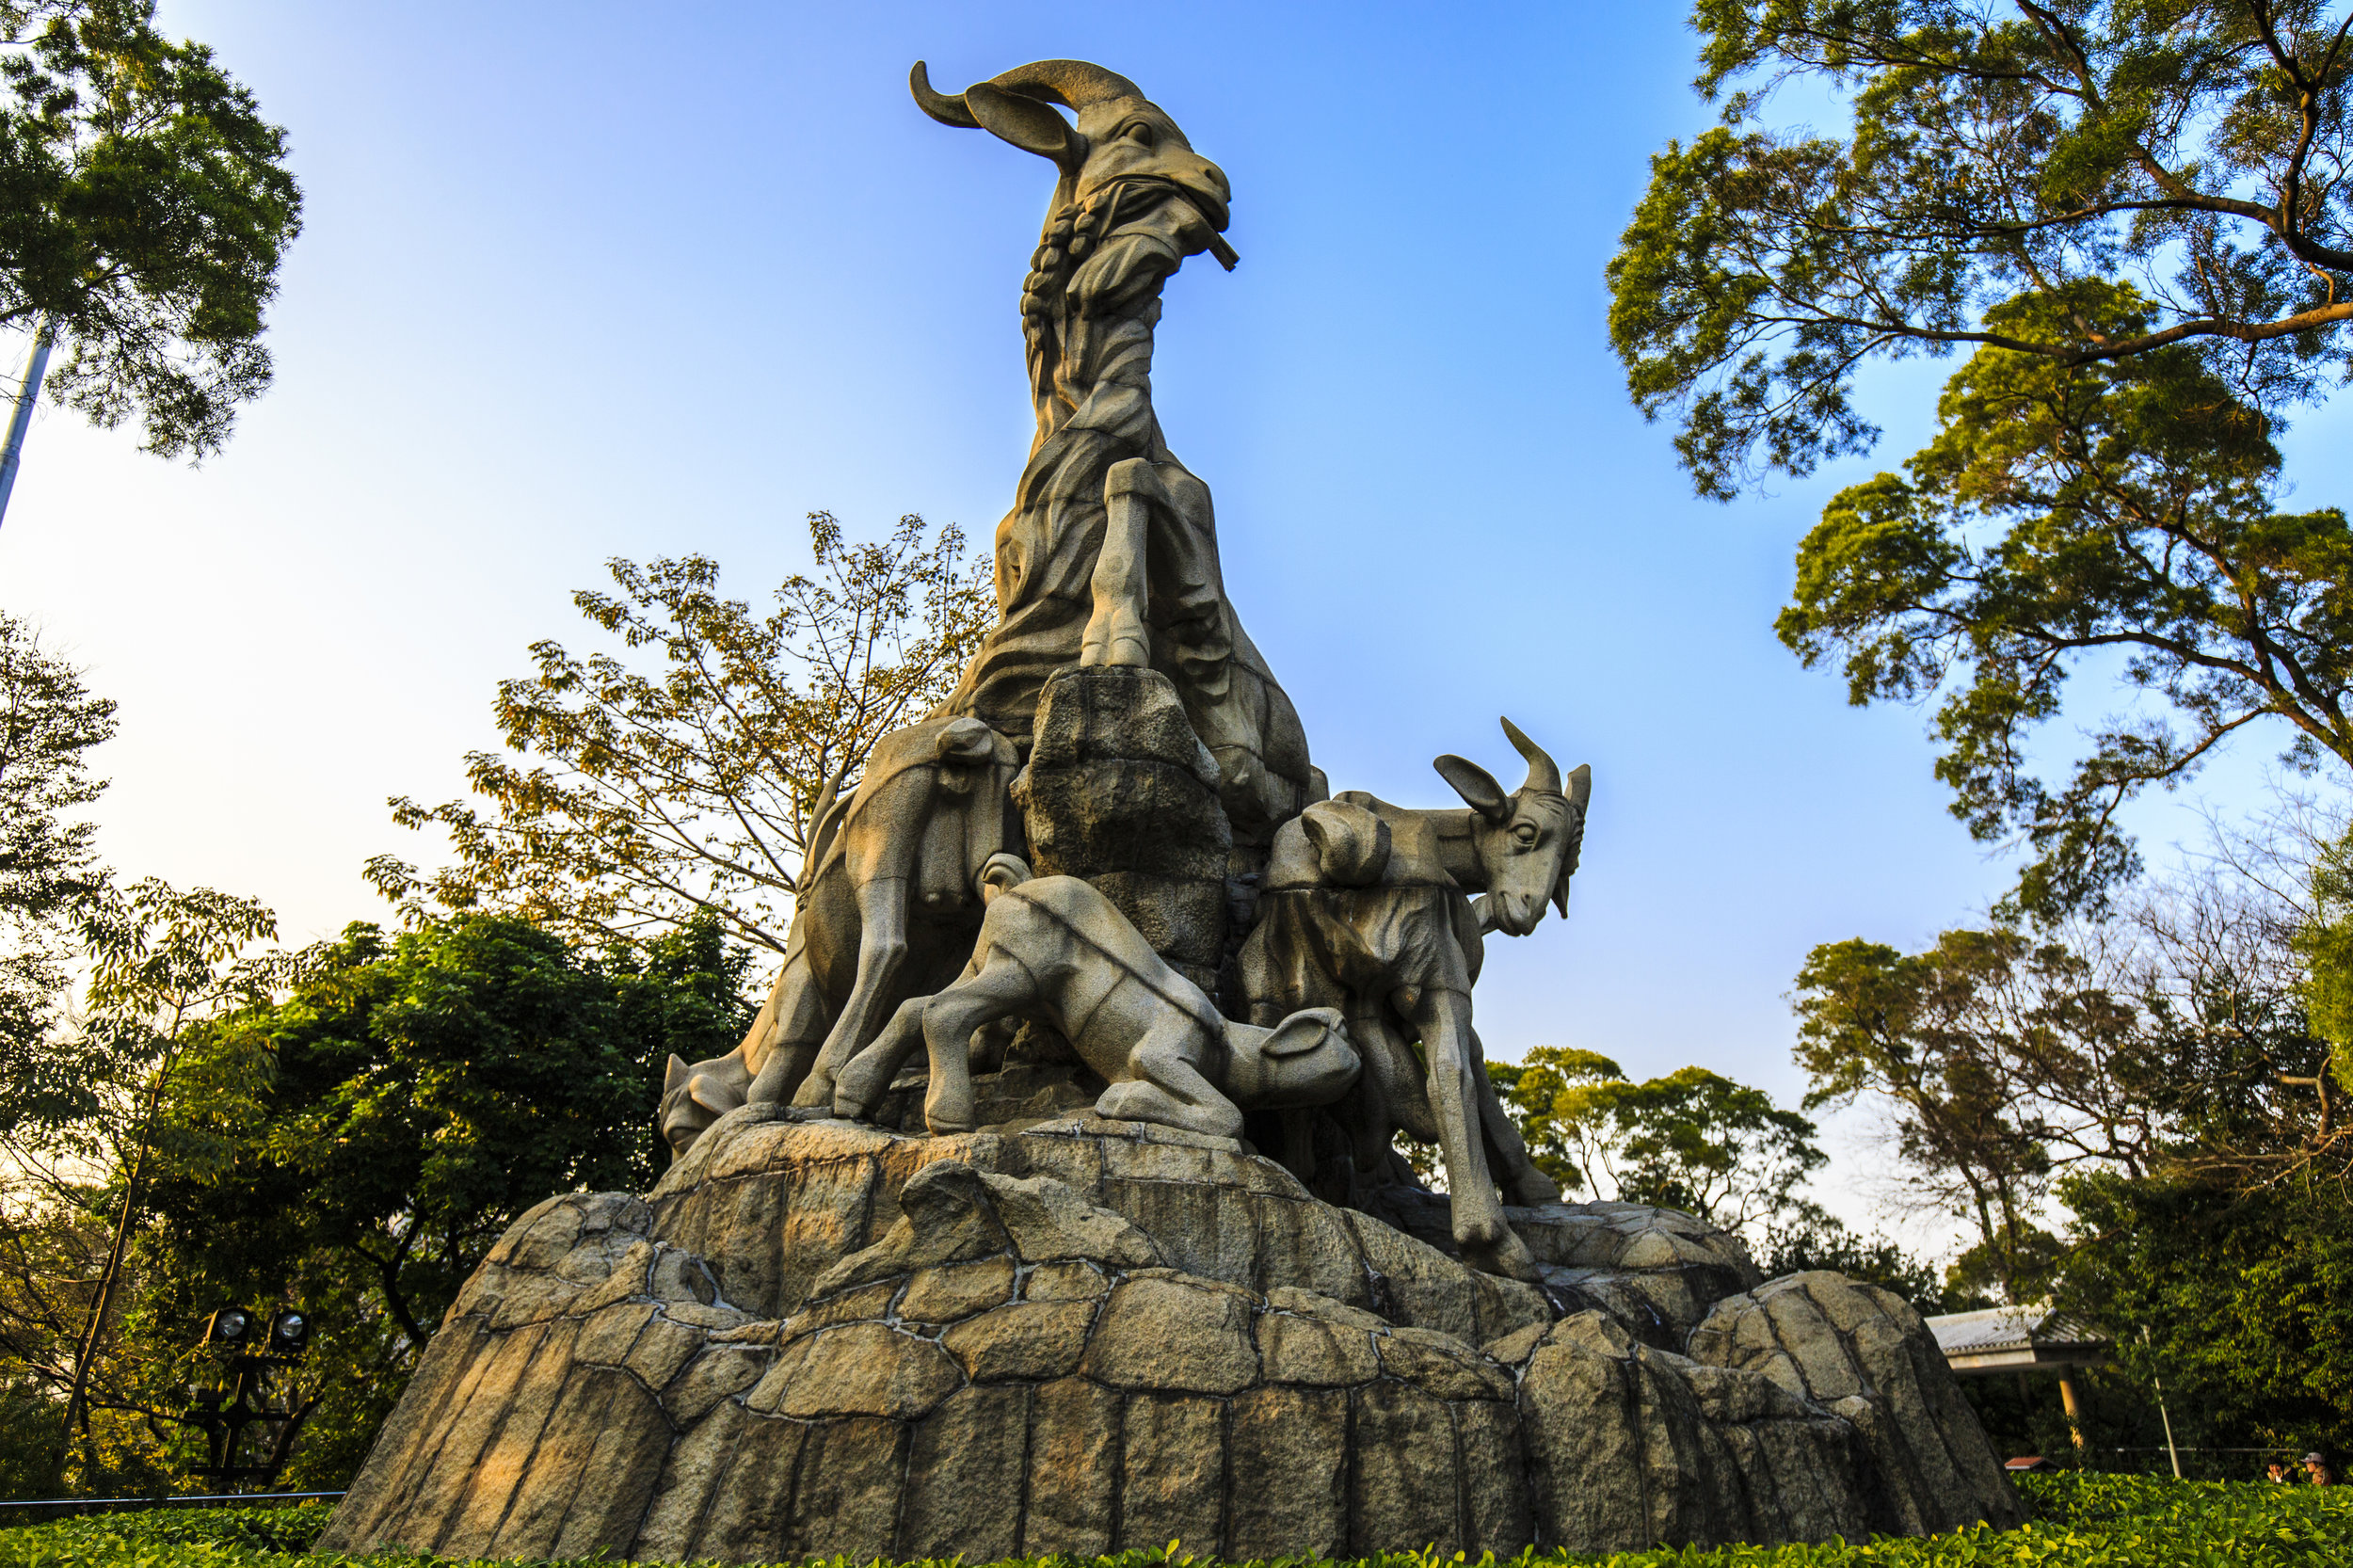 """An ancient legend tells of five celestial beings descending upon the city of Guangzhou, riding five rams of differing colors, during a time of terrible famine. In the mouths of each of the rams were special sheaves of rice, which the celestial beings bestowed upon the people of Guangzhou, in order to save the city from starvation and ensure that they would never suffer from famine again. As a testament to this story, a sculpture of five rams currently stands in the city's Yuexiu Park (pictured above),earning Guangzhou the nickname """"The City of the Five Rams""""."""